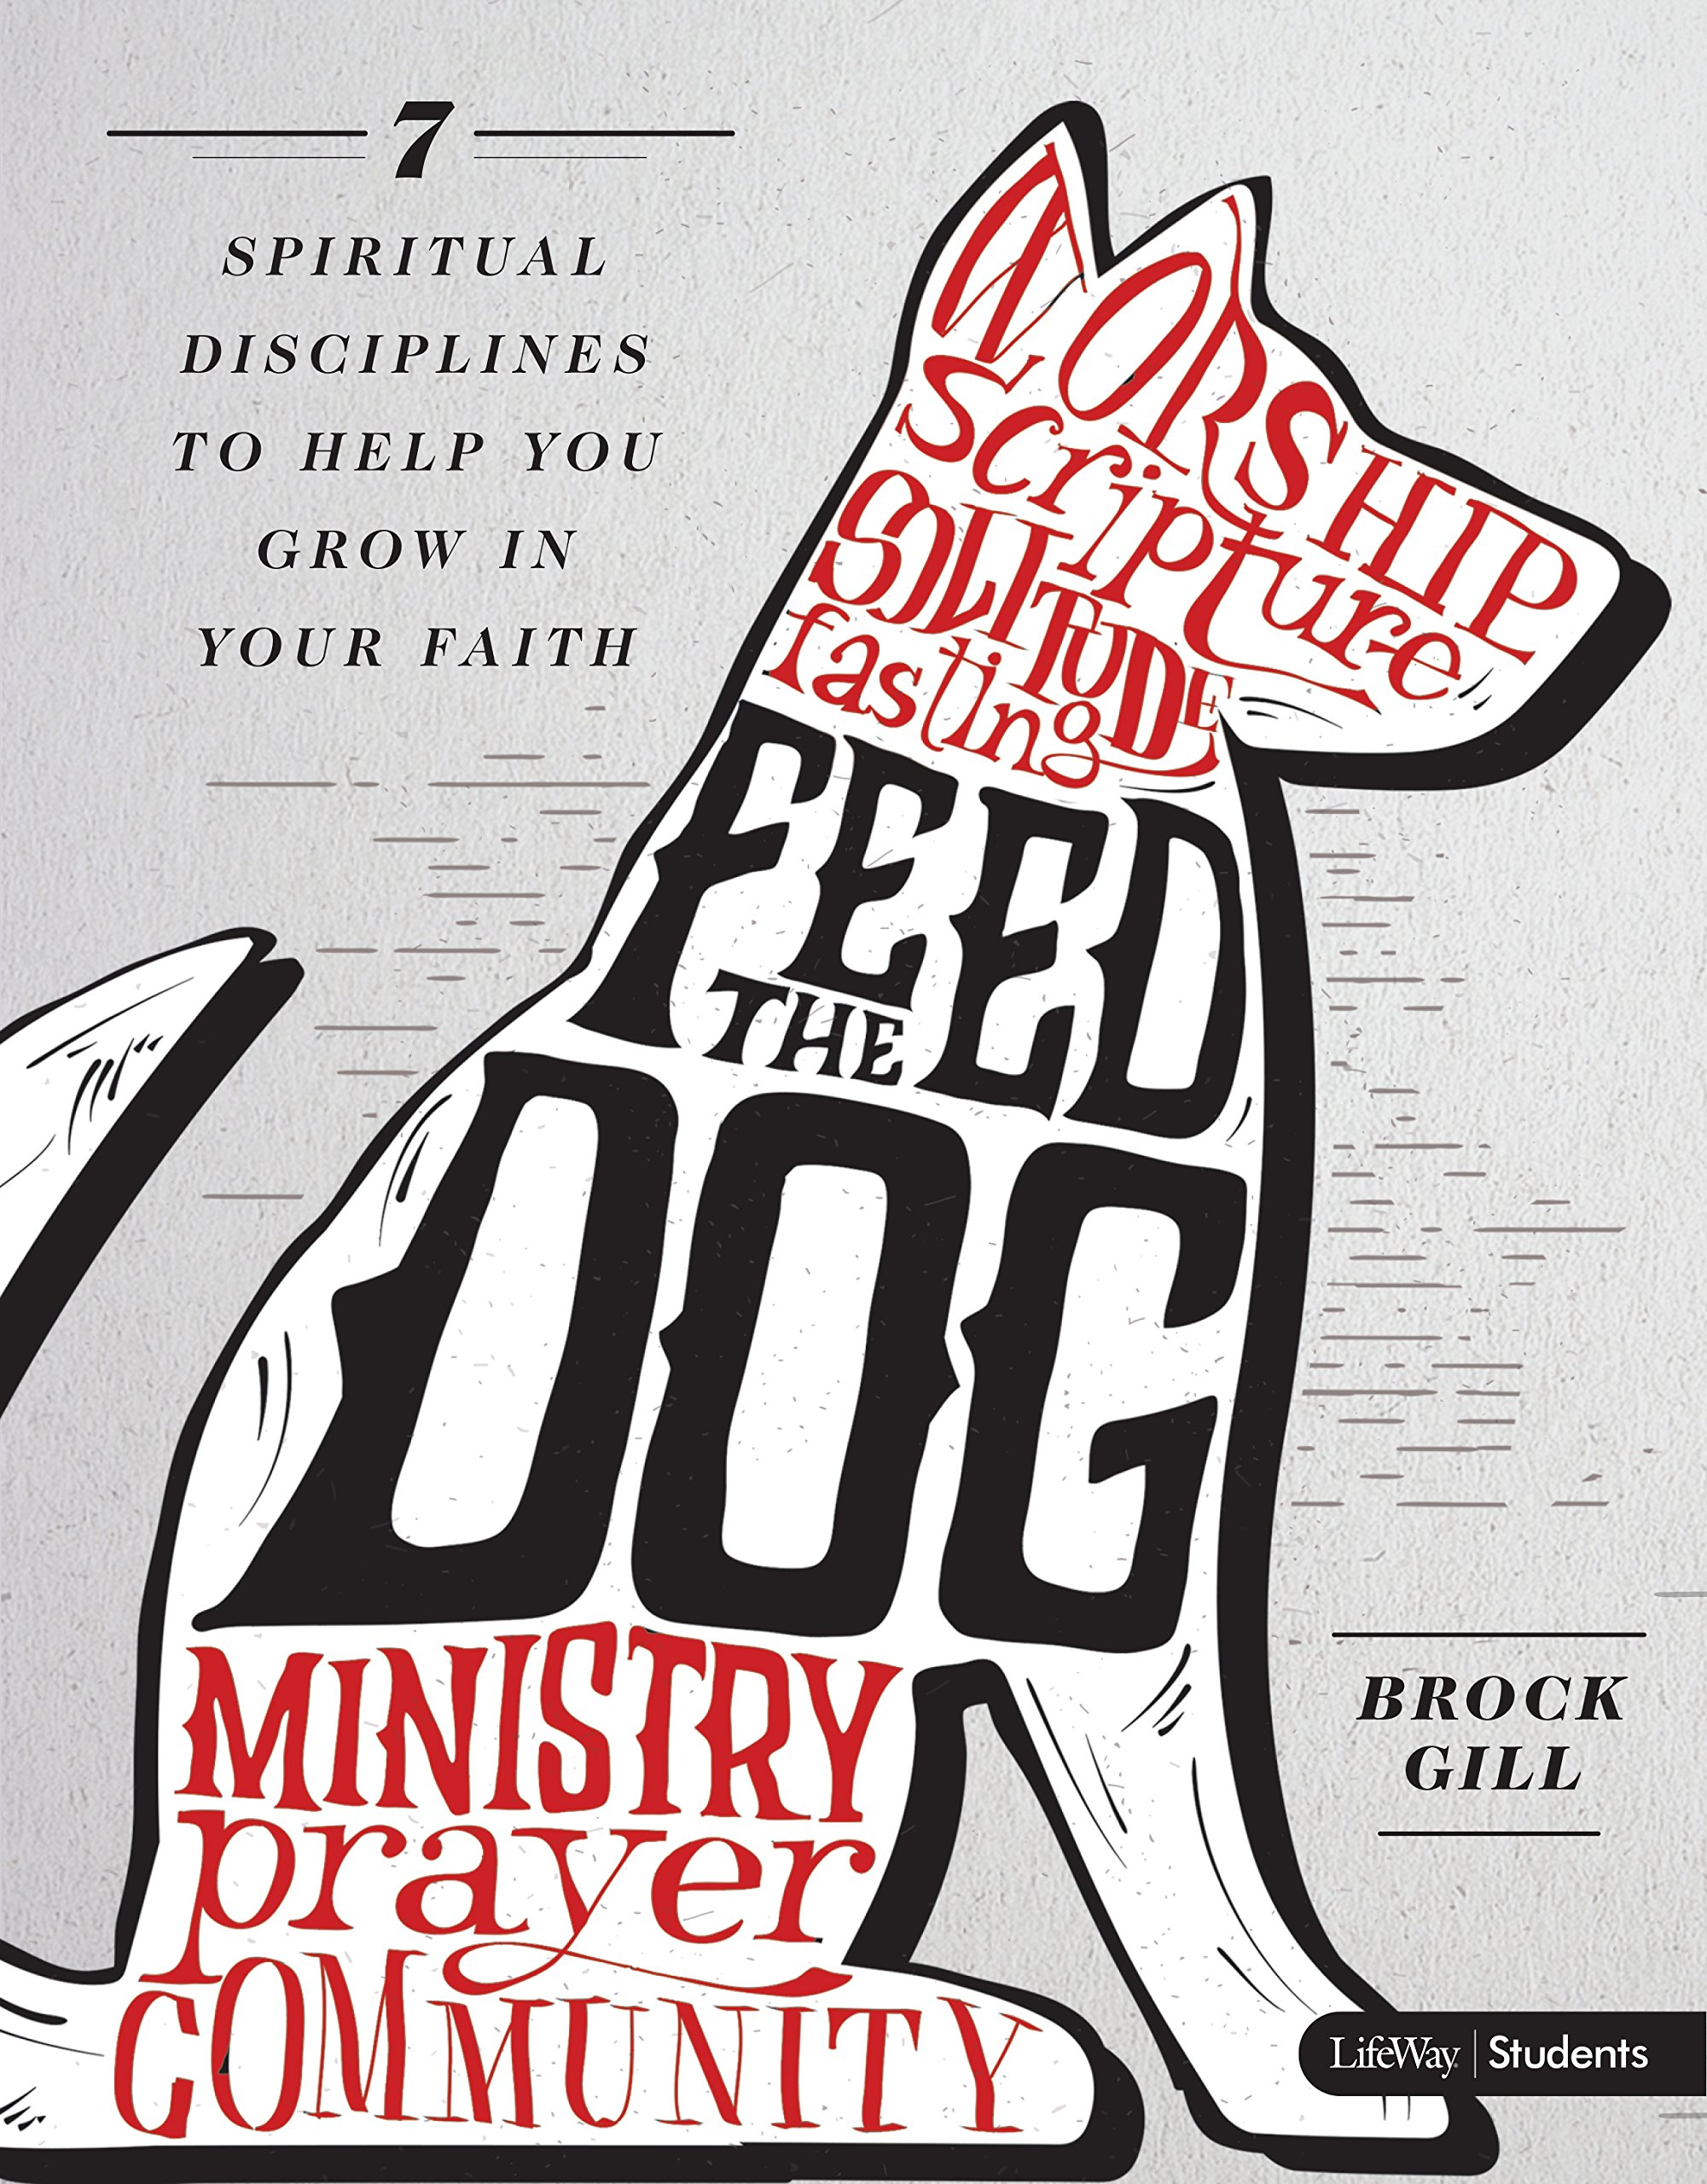 Feed the Dog - Leader Kit: 7 Spiritual Disciplines to Help You Grow in Your Faith